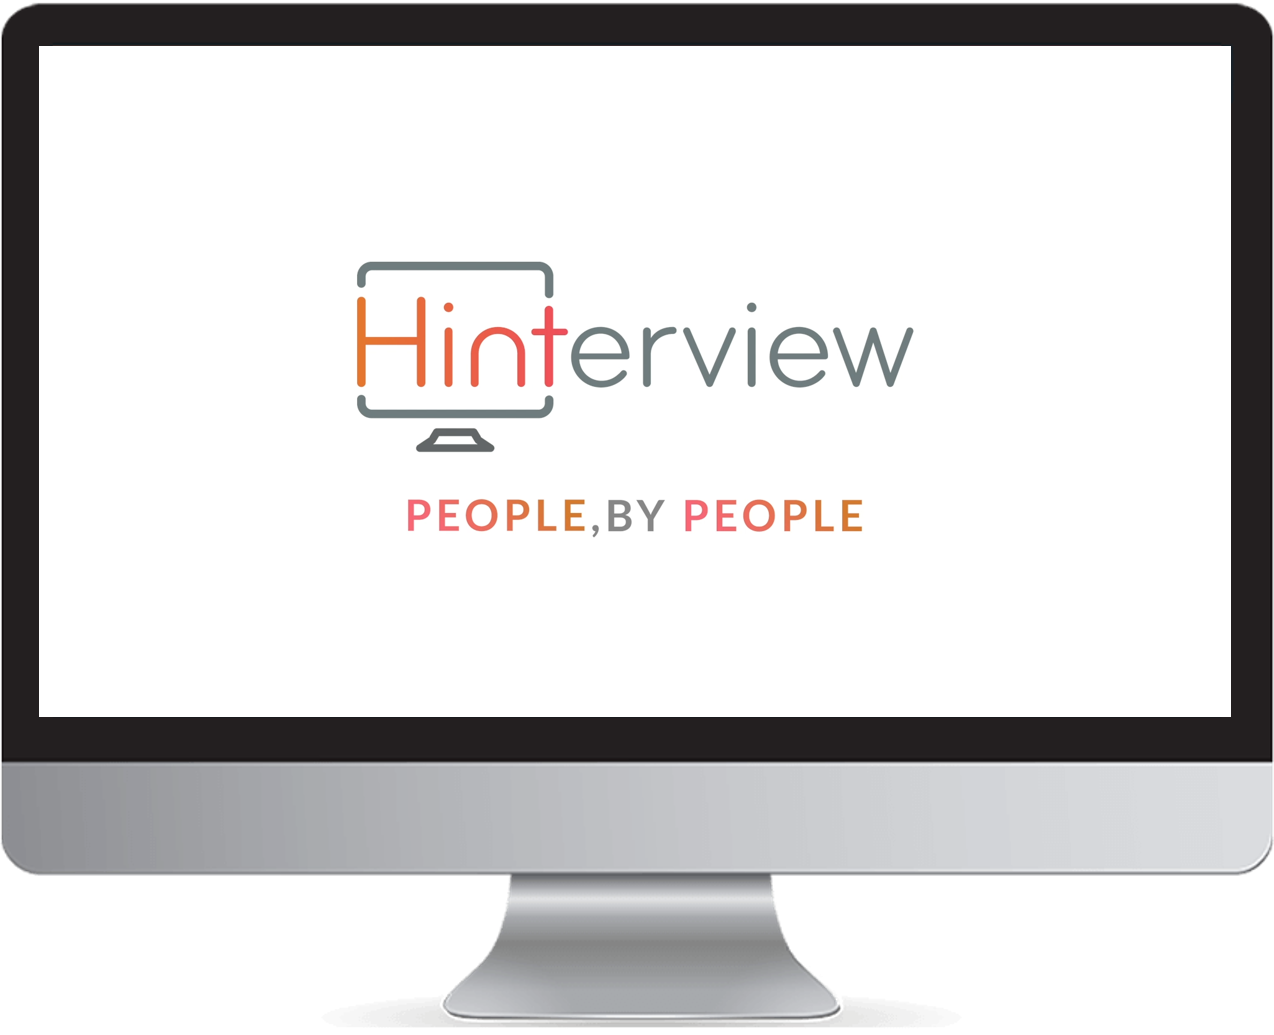 Hinterview pillar video frame